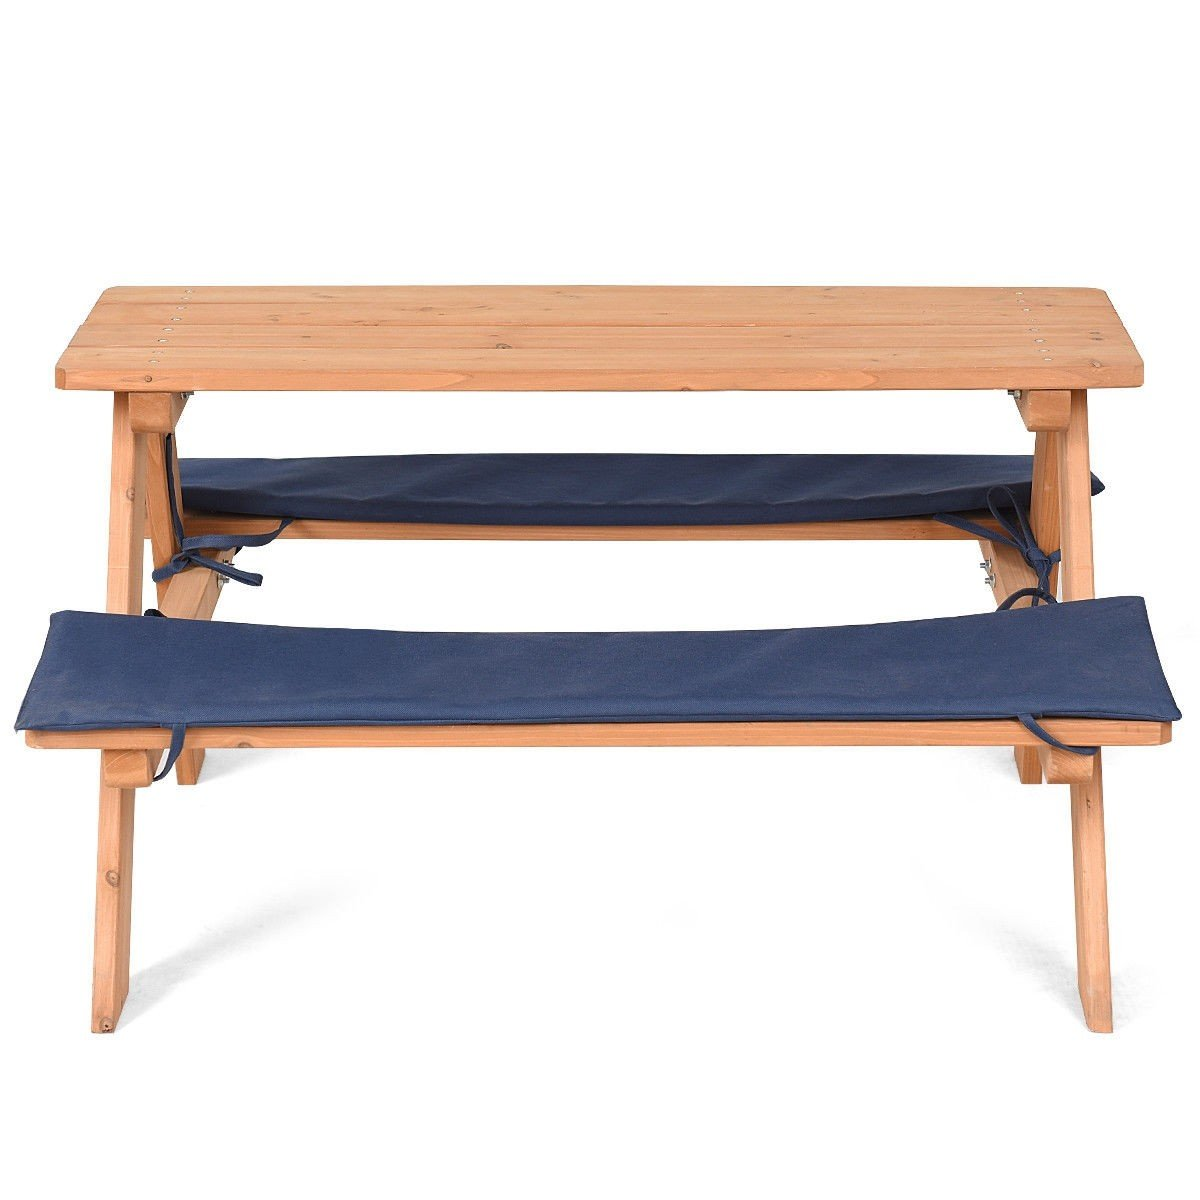 LordBee New Kids Wooden Beach Play Picnic Table Bench Set with Cushion Wood Color